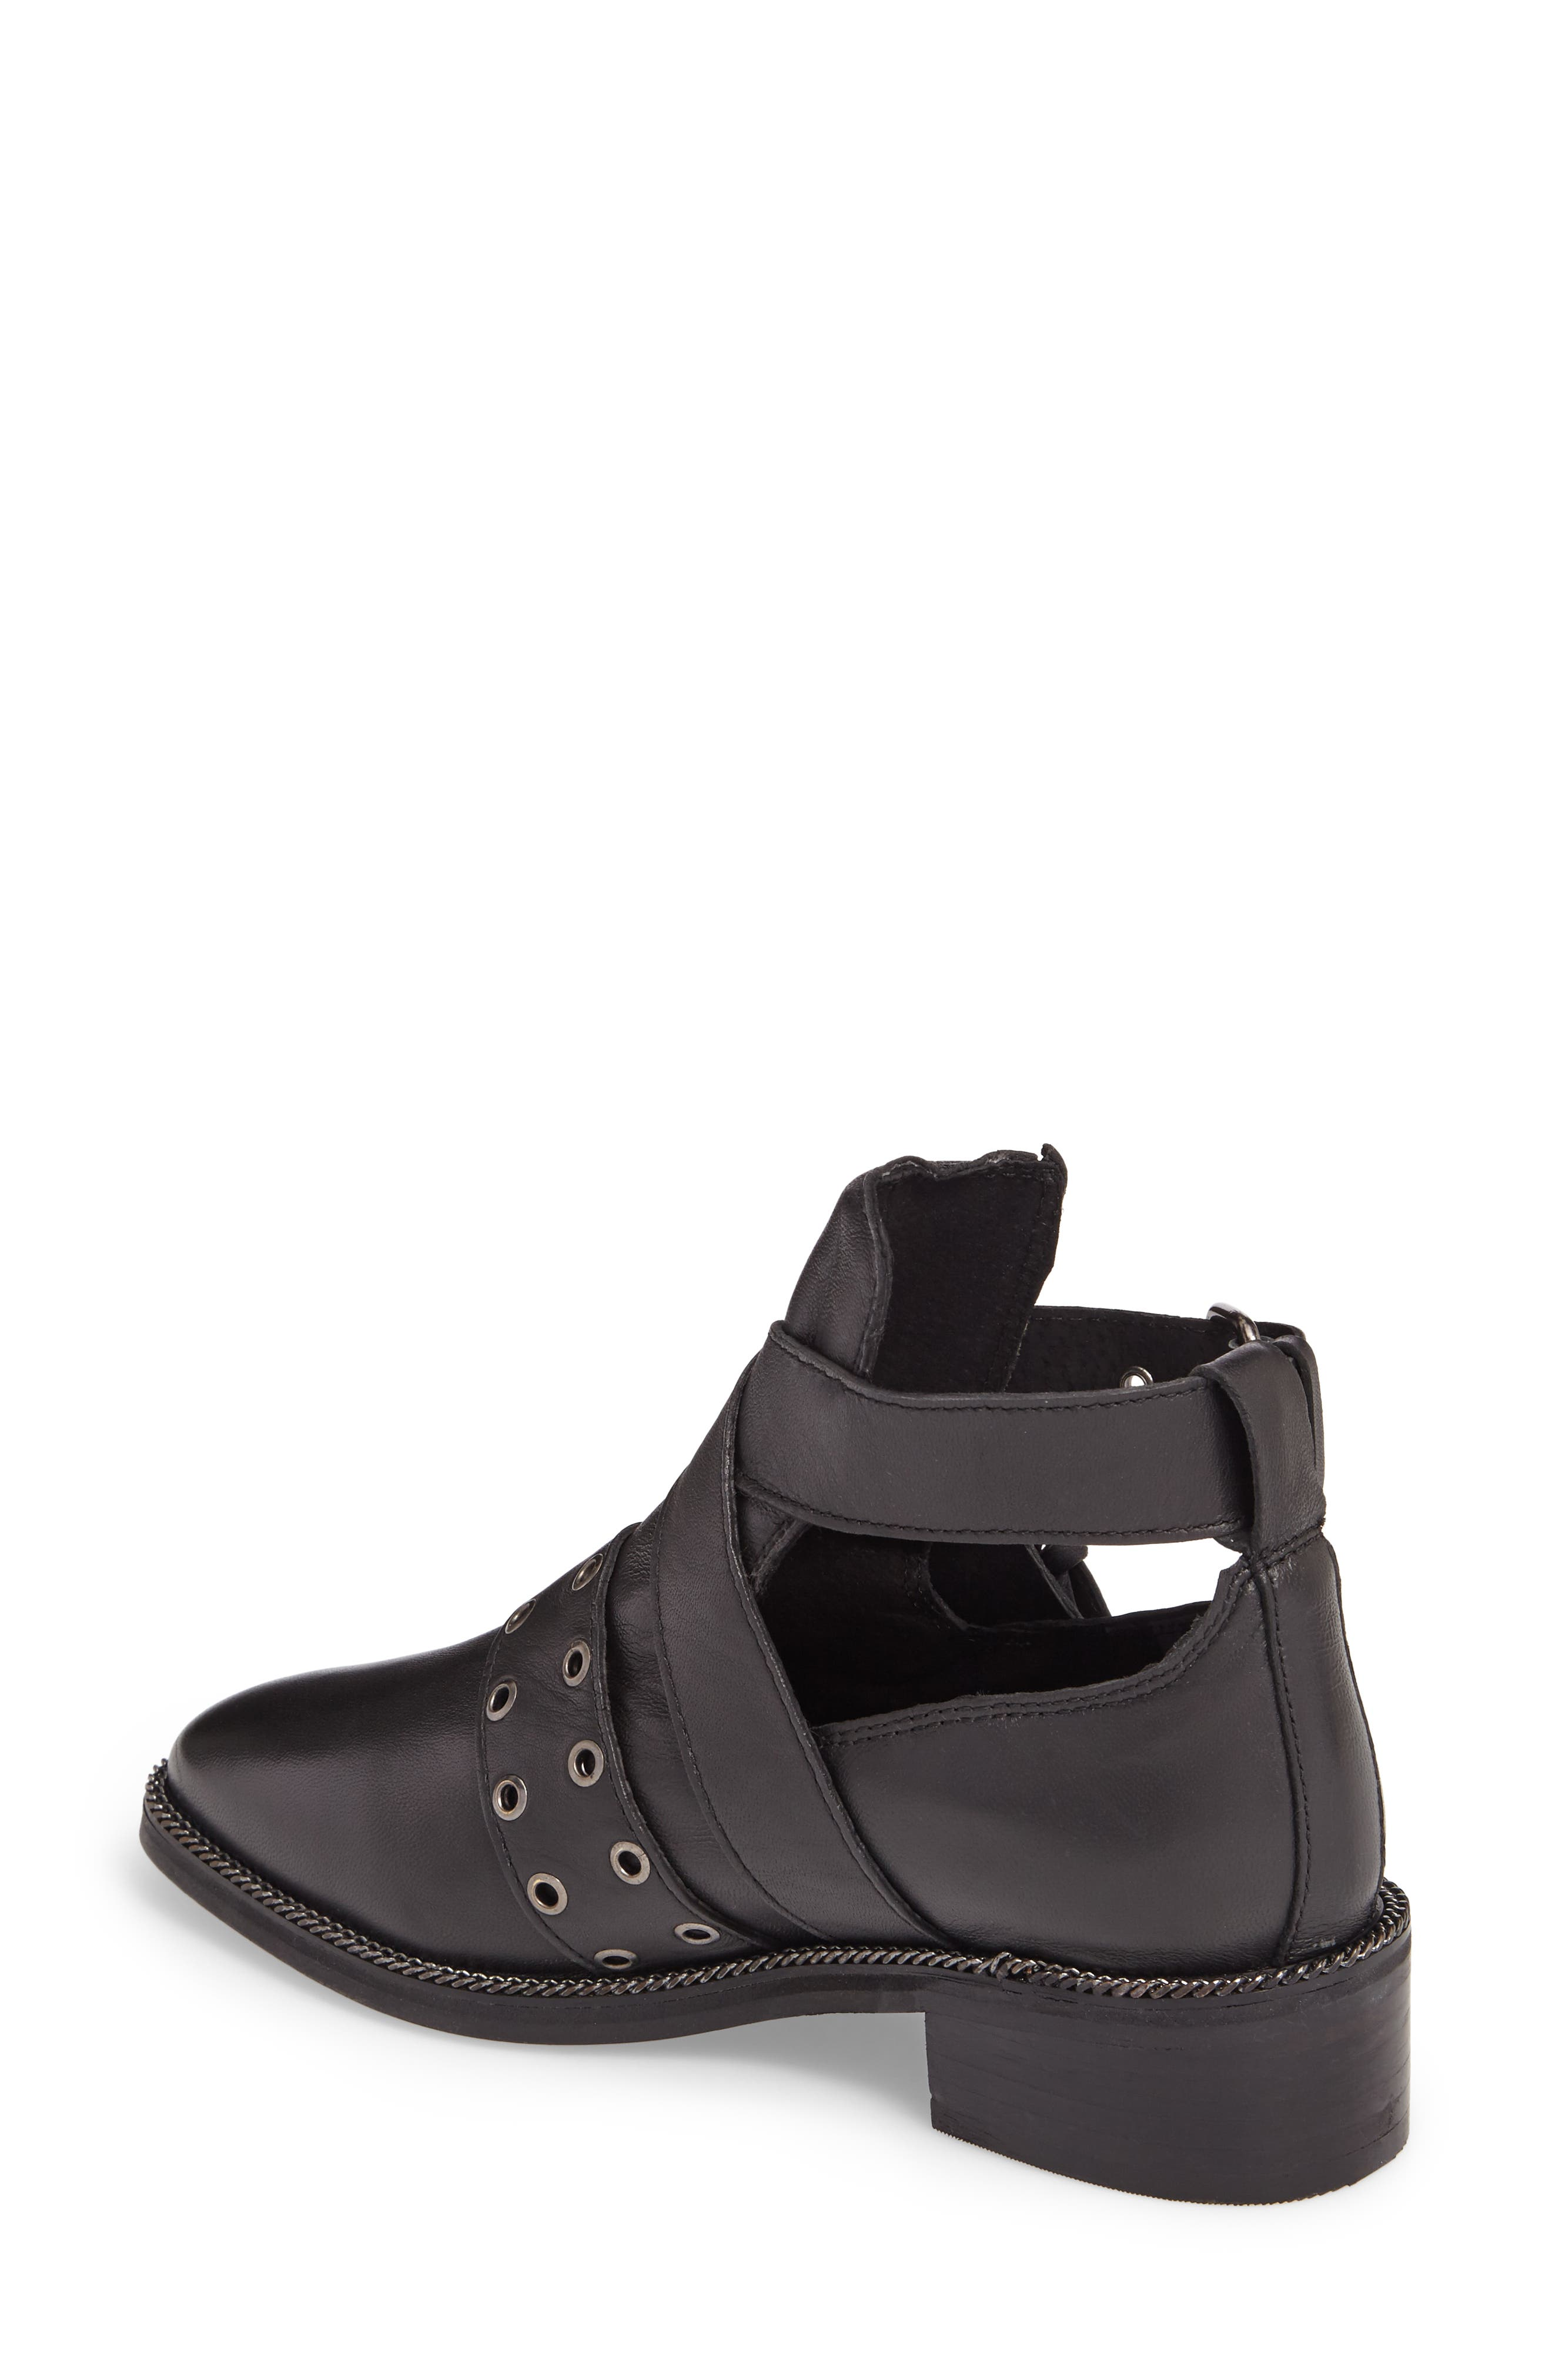 Adrian Cutout Ankle Boot,                             Alternate thumbnail 2, color,